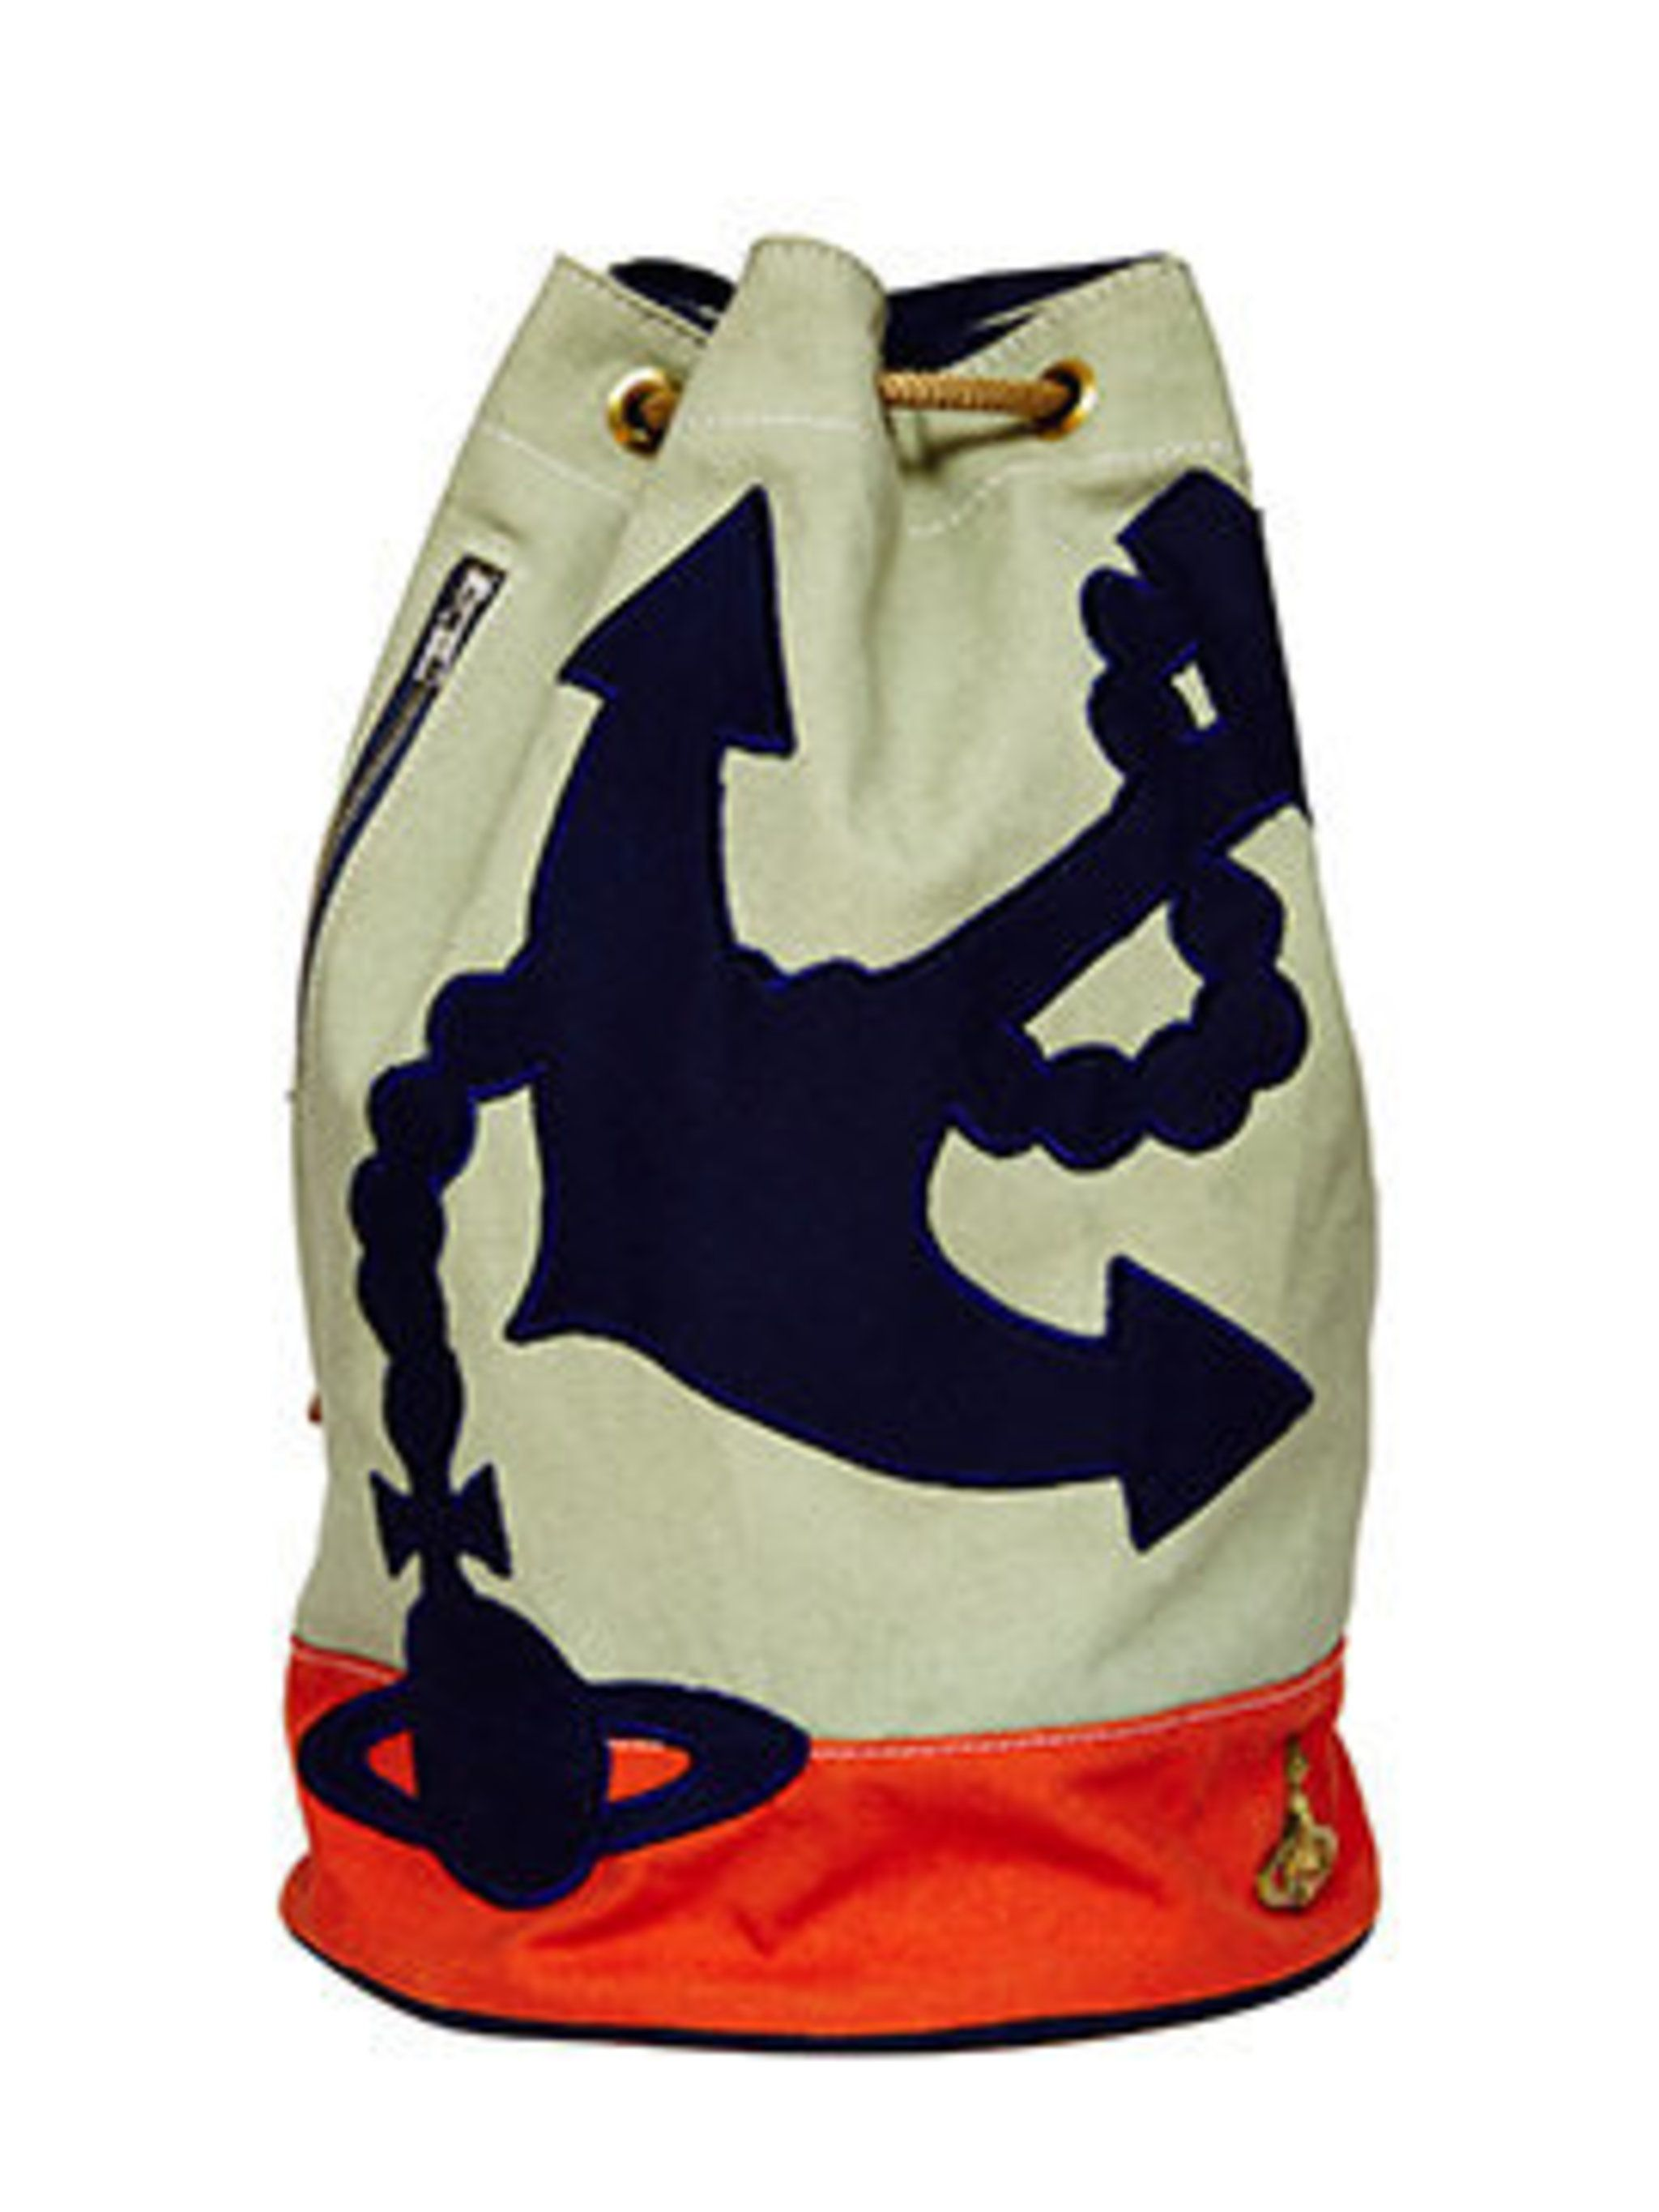 <p>Anchor Duffle Bag, £143 from the Vivienne Westwood Africa collection from ASOS</p>